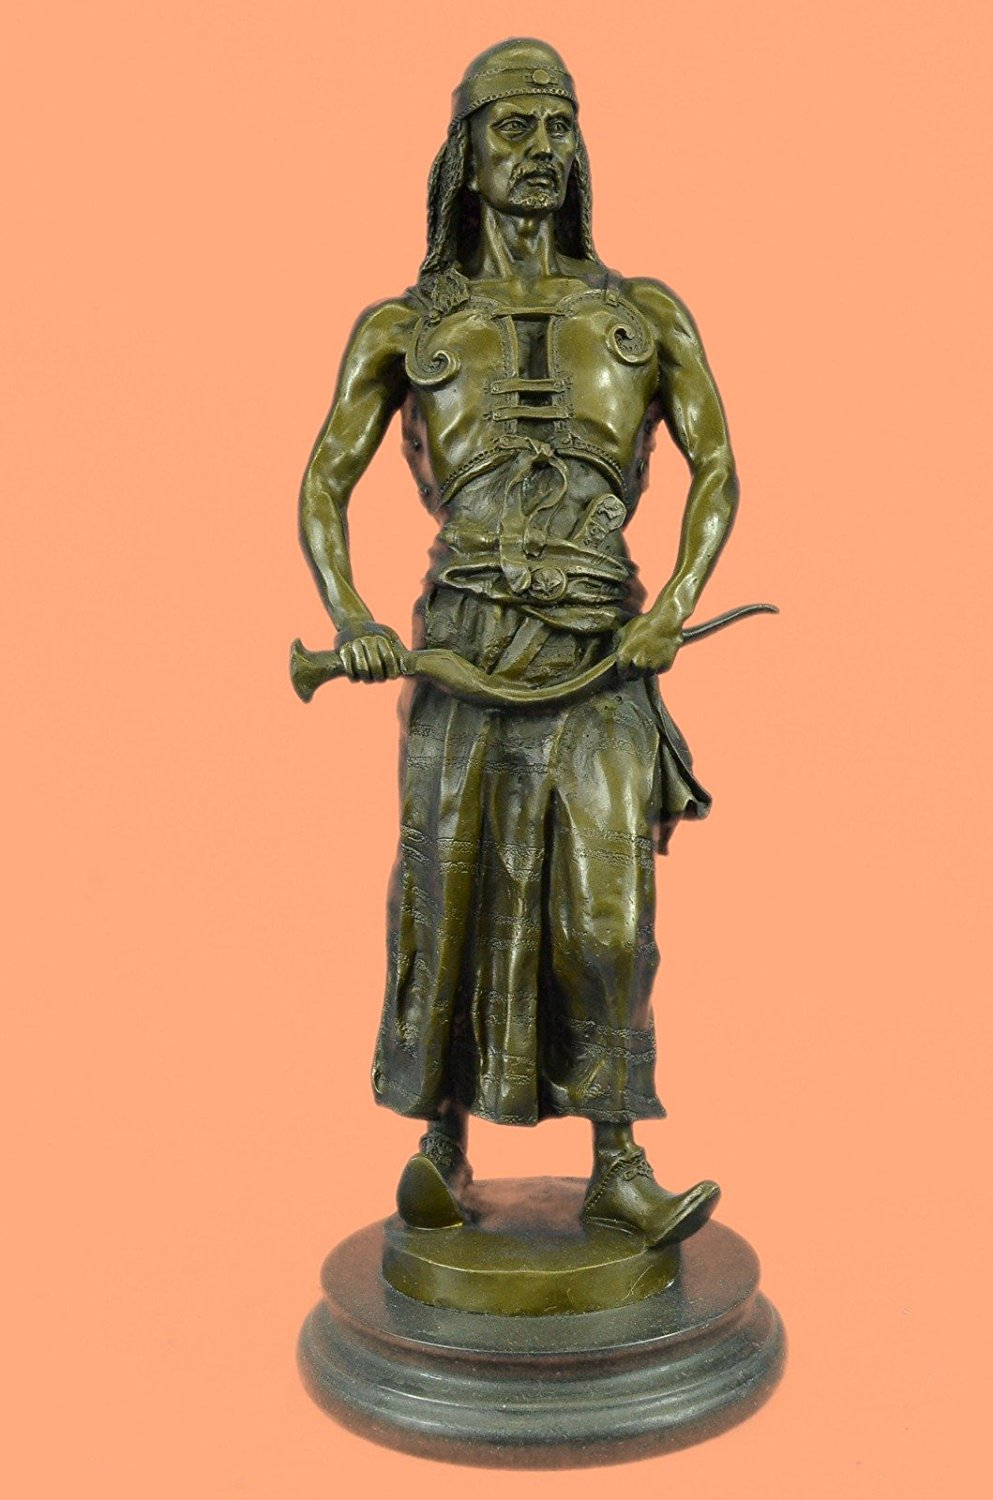 ...Handmade...European Bronze Sculpture Signed Goudray L'Emir Nomadic Arab Middle Eastern Chief Sword (1X-STE-269) Bronze Sculpture Statues Figurine Nude Office & Home Décor Collectibles Sale Deal Gi